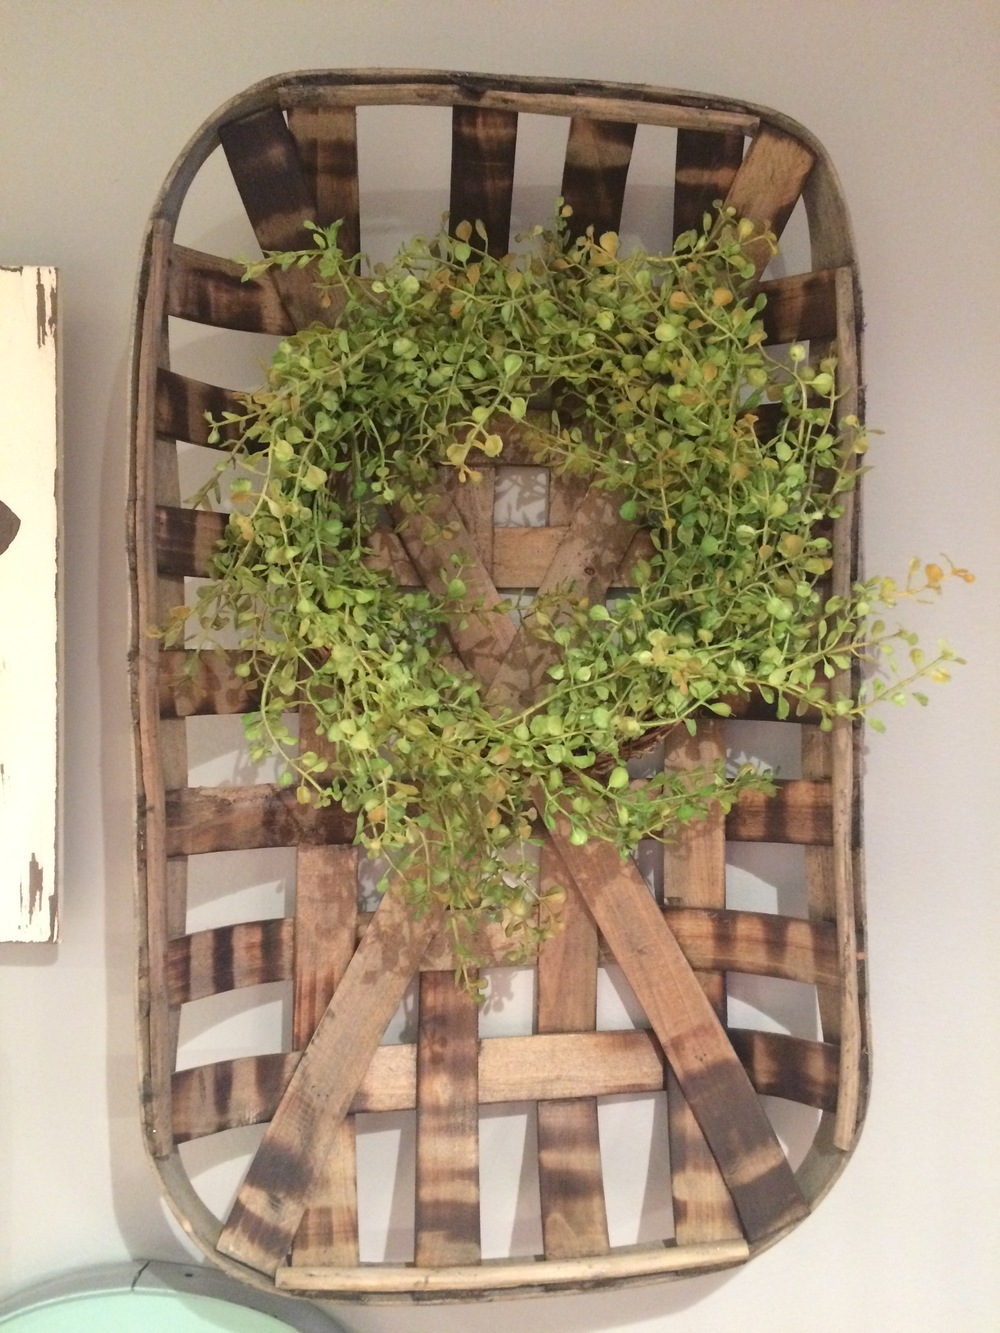 We added some color to this old basket hanging on the wall with a sweet little green wreath.    Photo from: Chrysy Huff